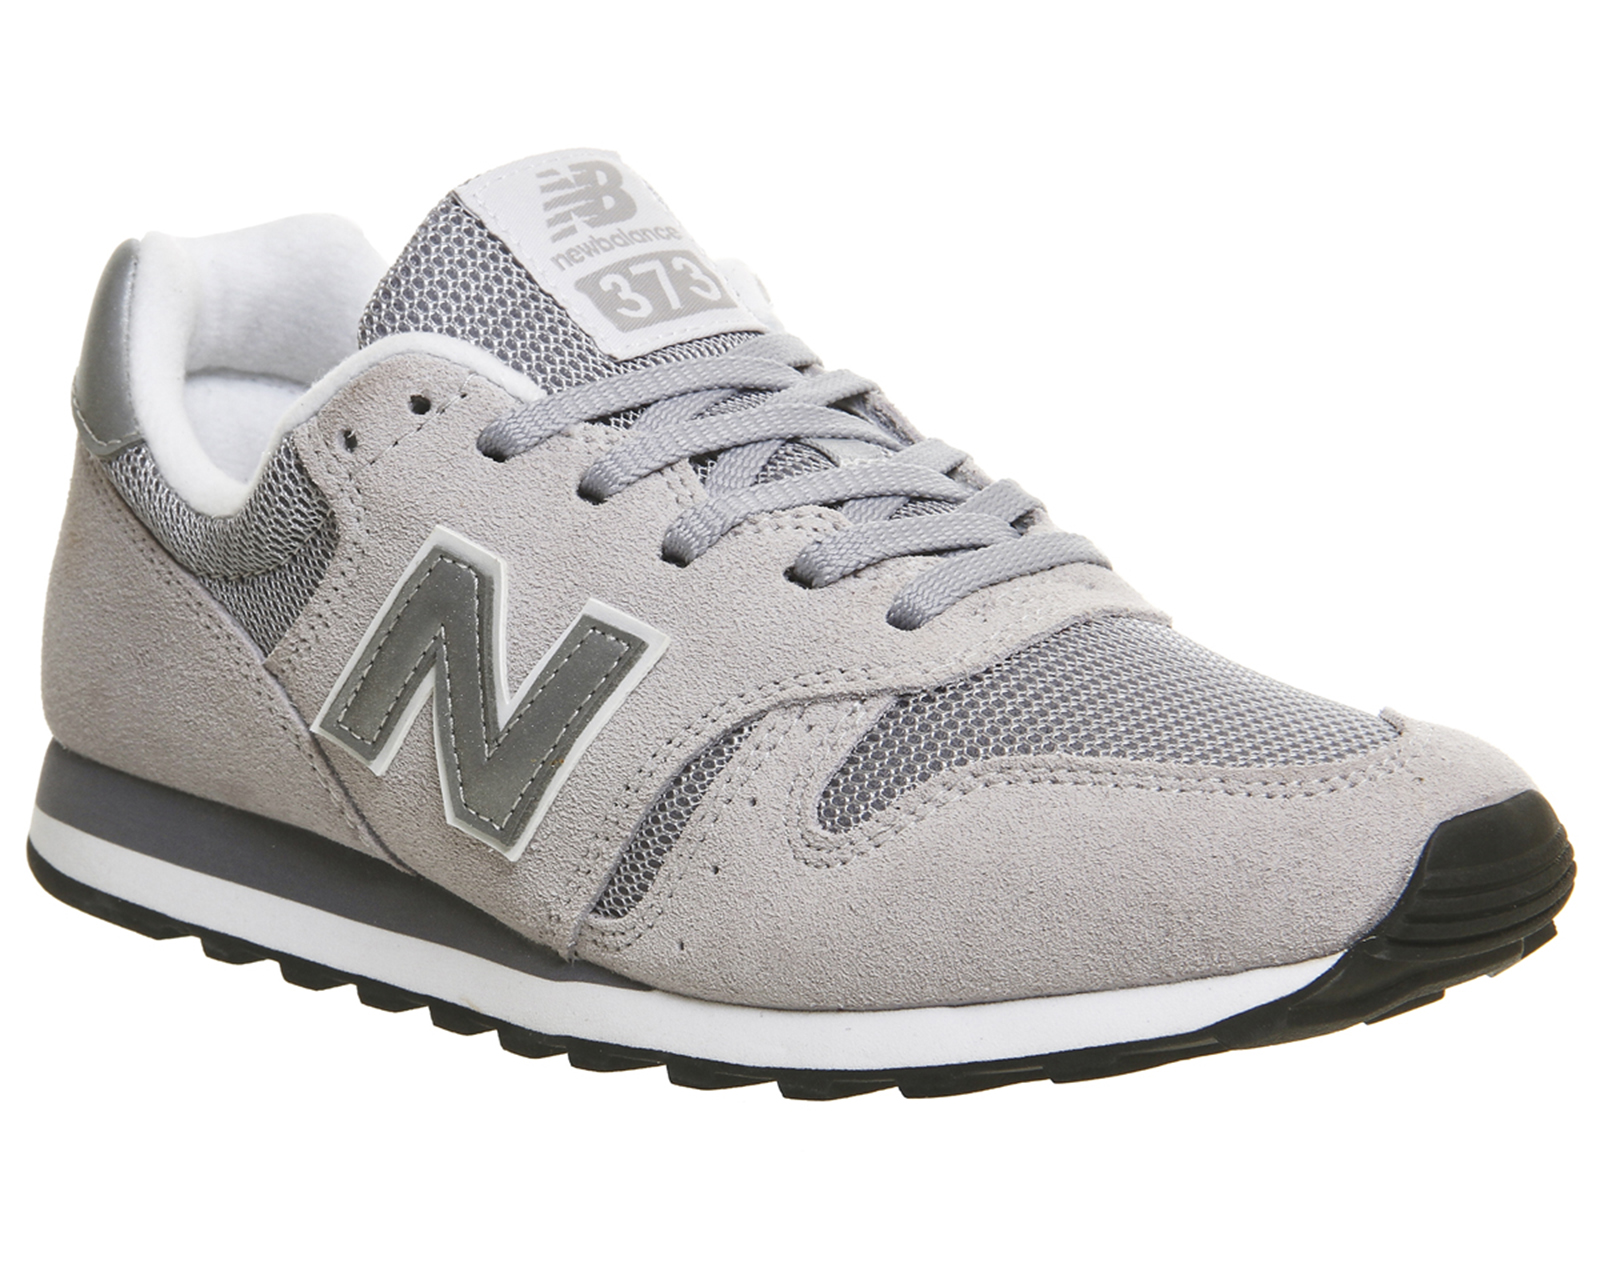 new balance 373 navy and silver